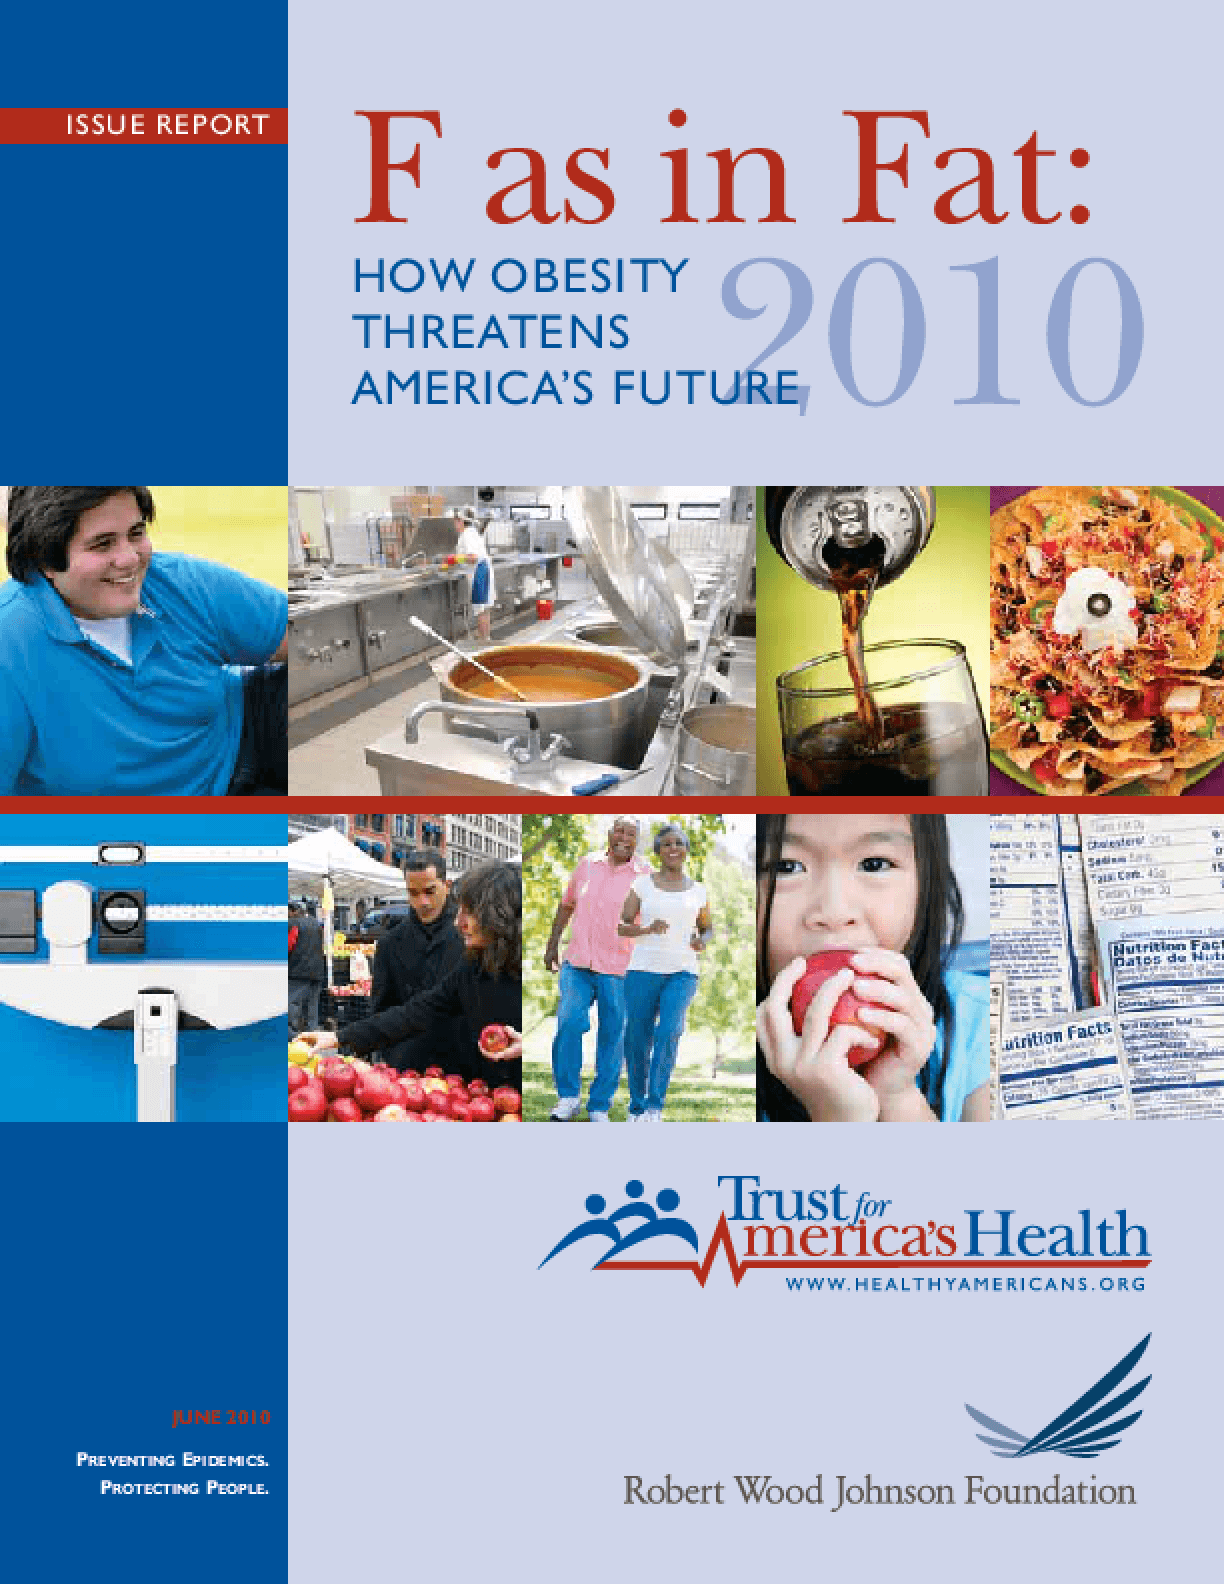 F as in Fat: How the Obesity Crisis Threatens America's Future, 2010